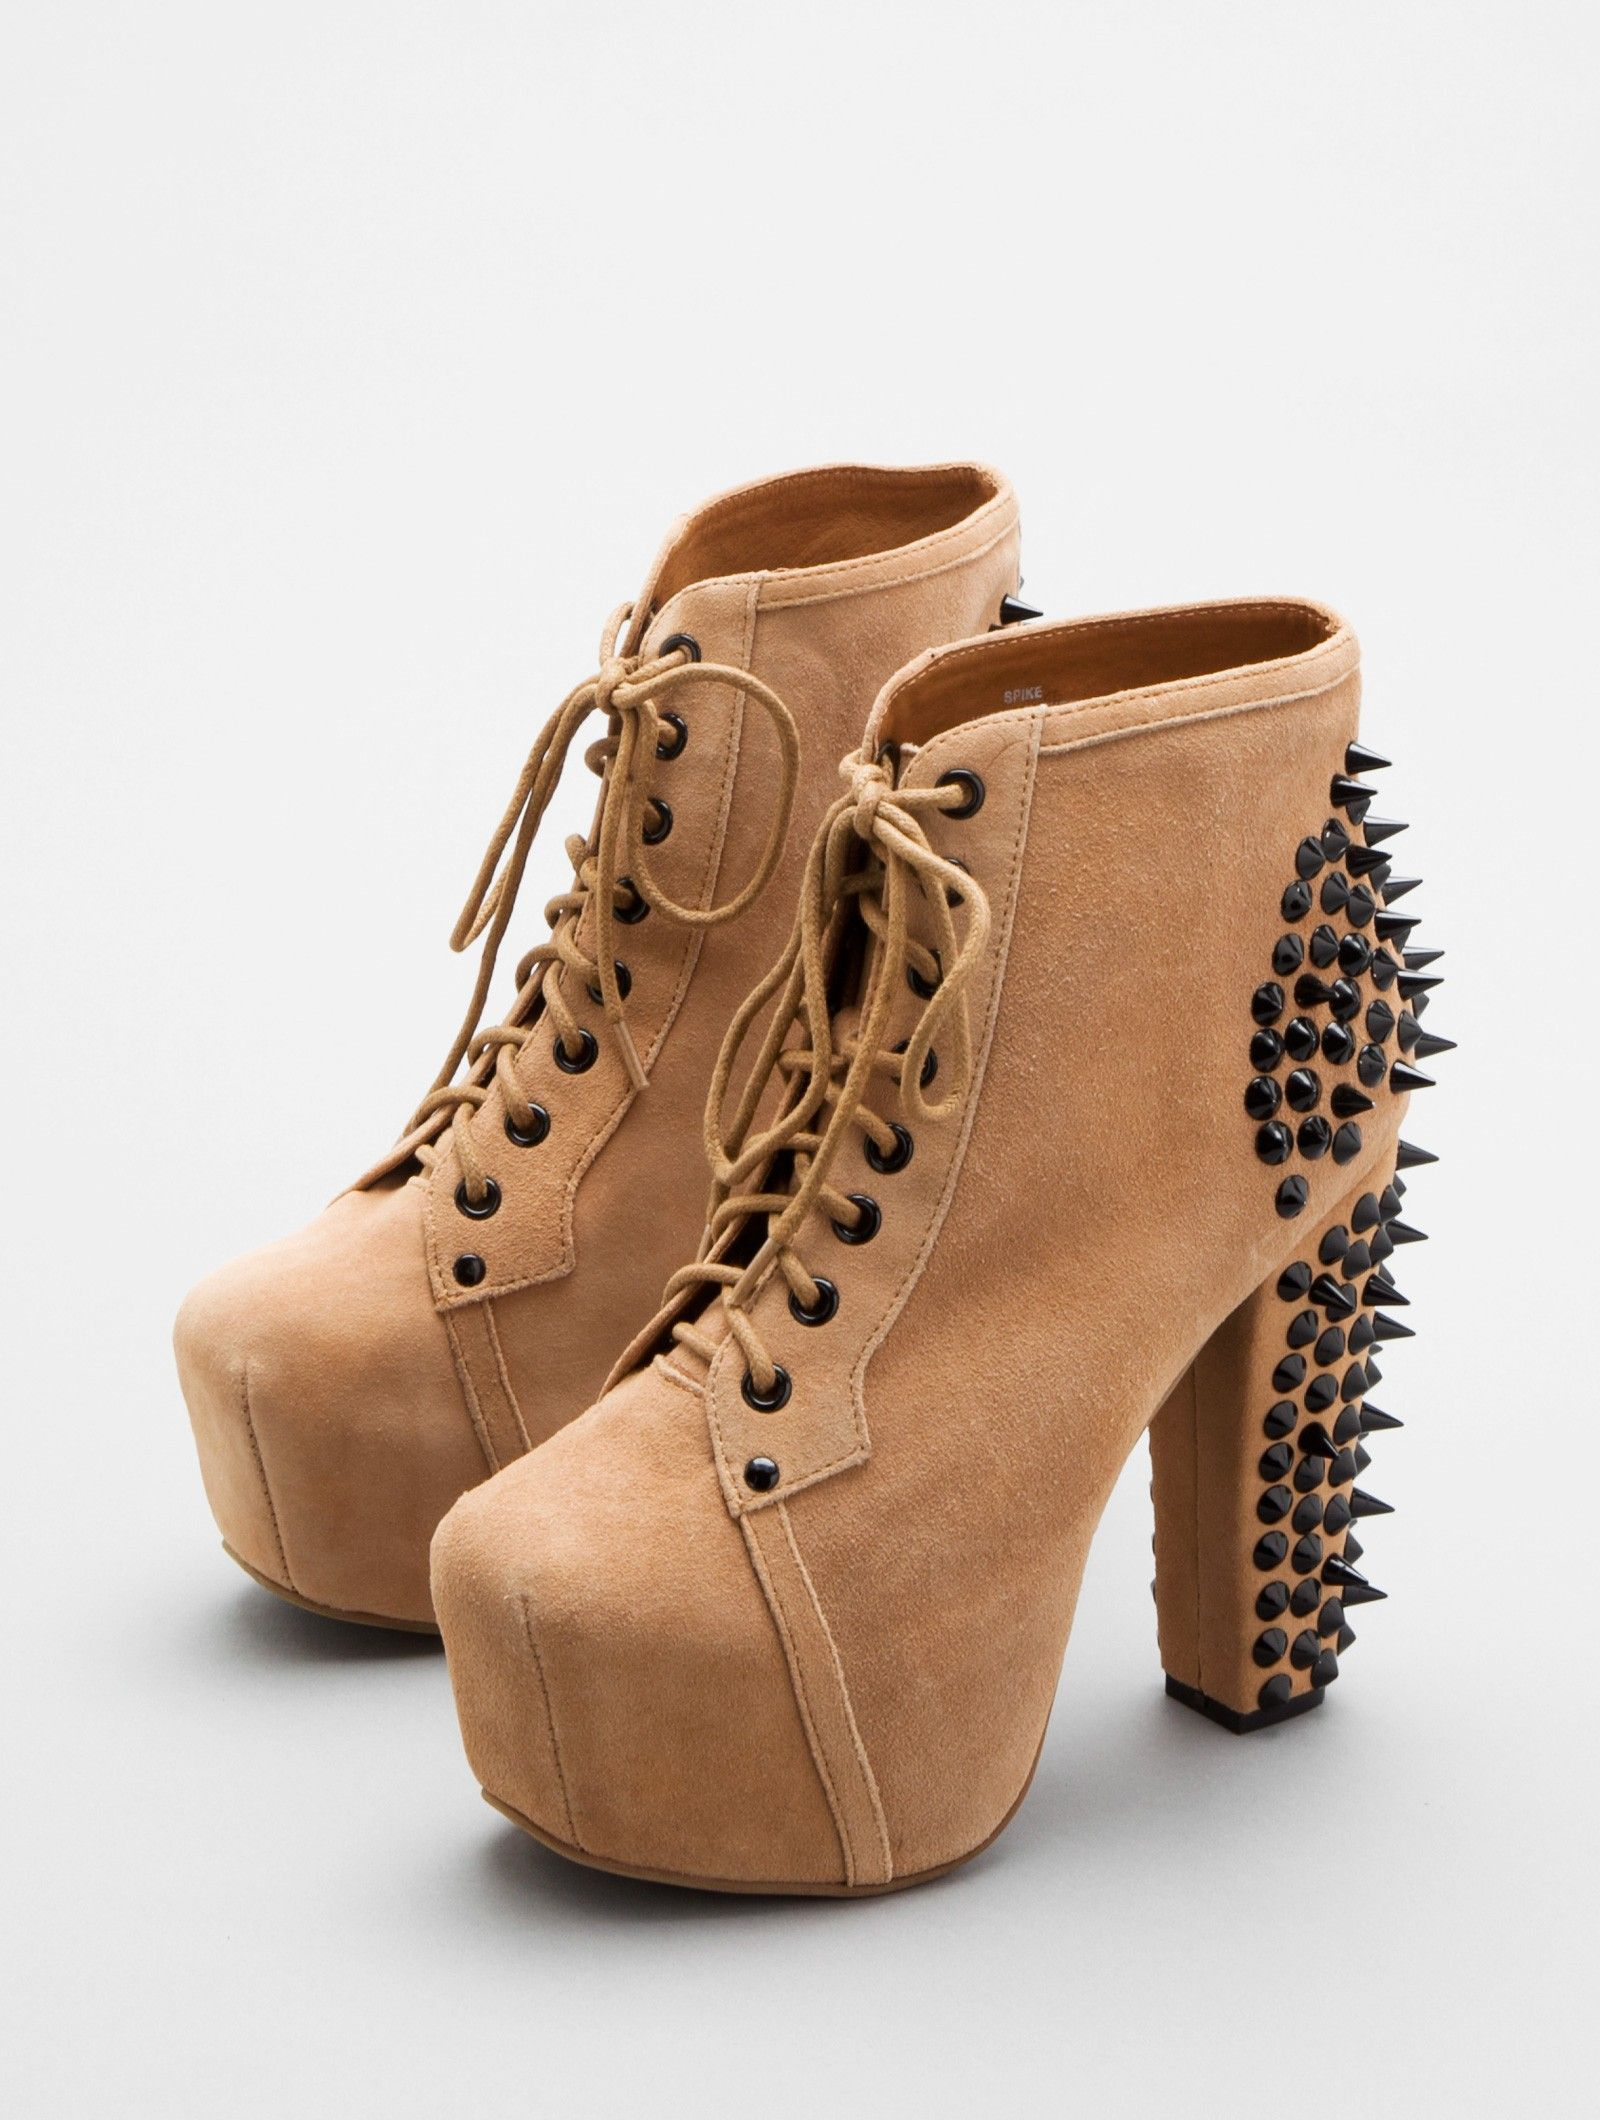 SPIKE by Jeffrey Campbell - BRANDS - Jeffrey Campbell - Lori's Designer Shoes, The Sole of Chicago